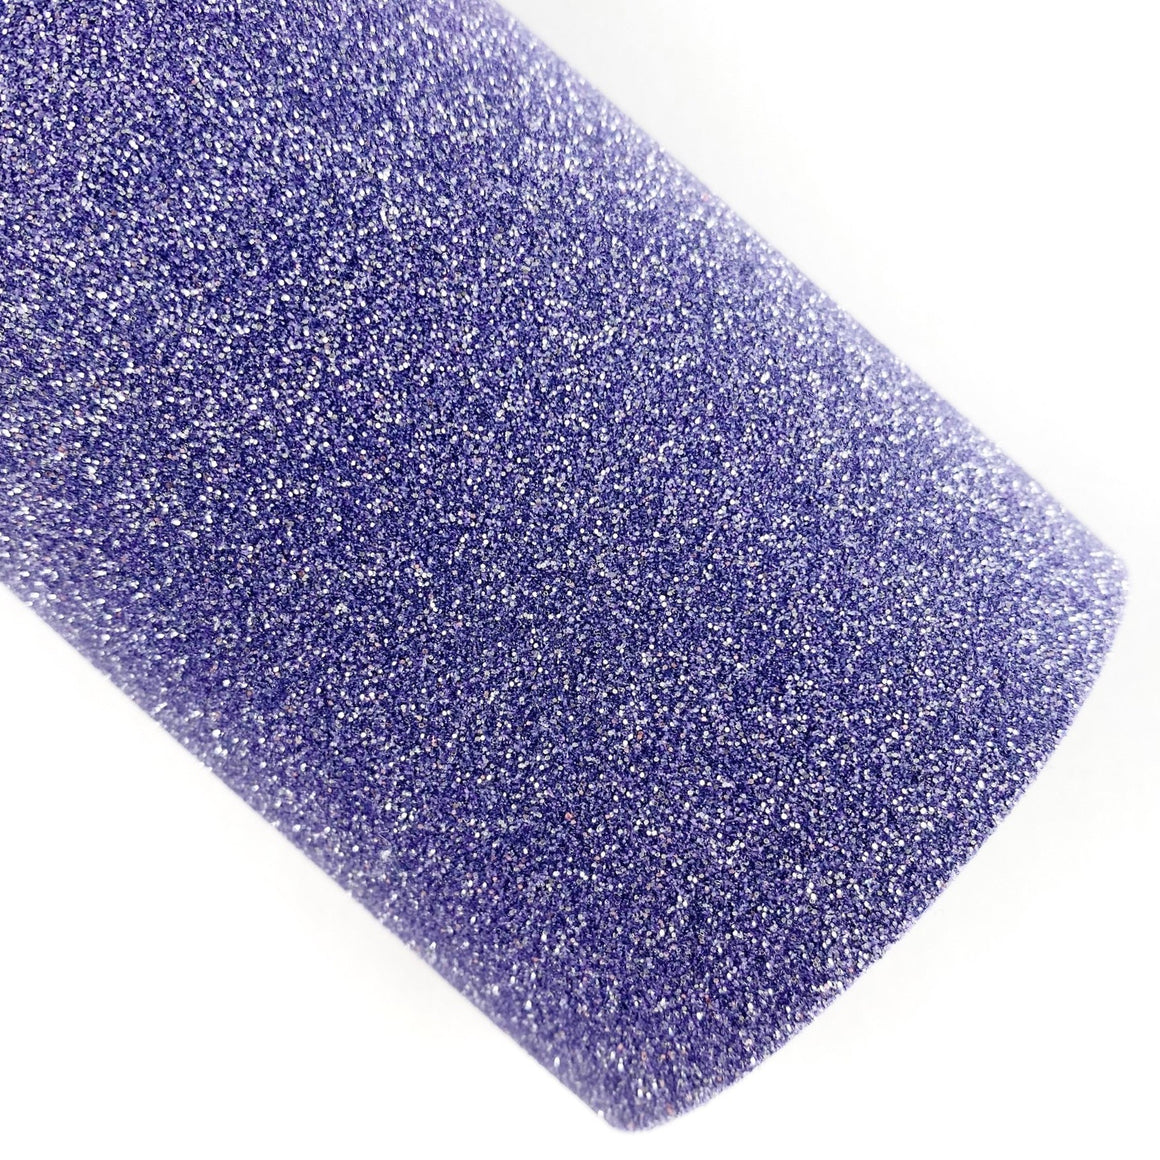 Indigo Fairy Dust Glitter